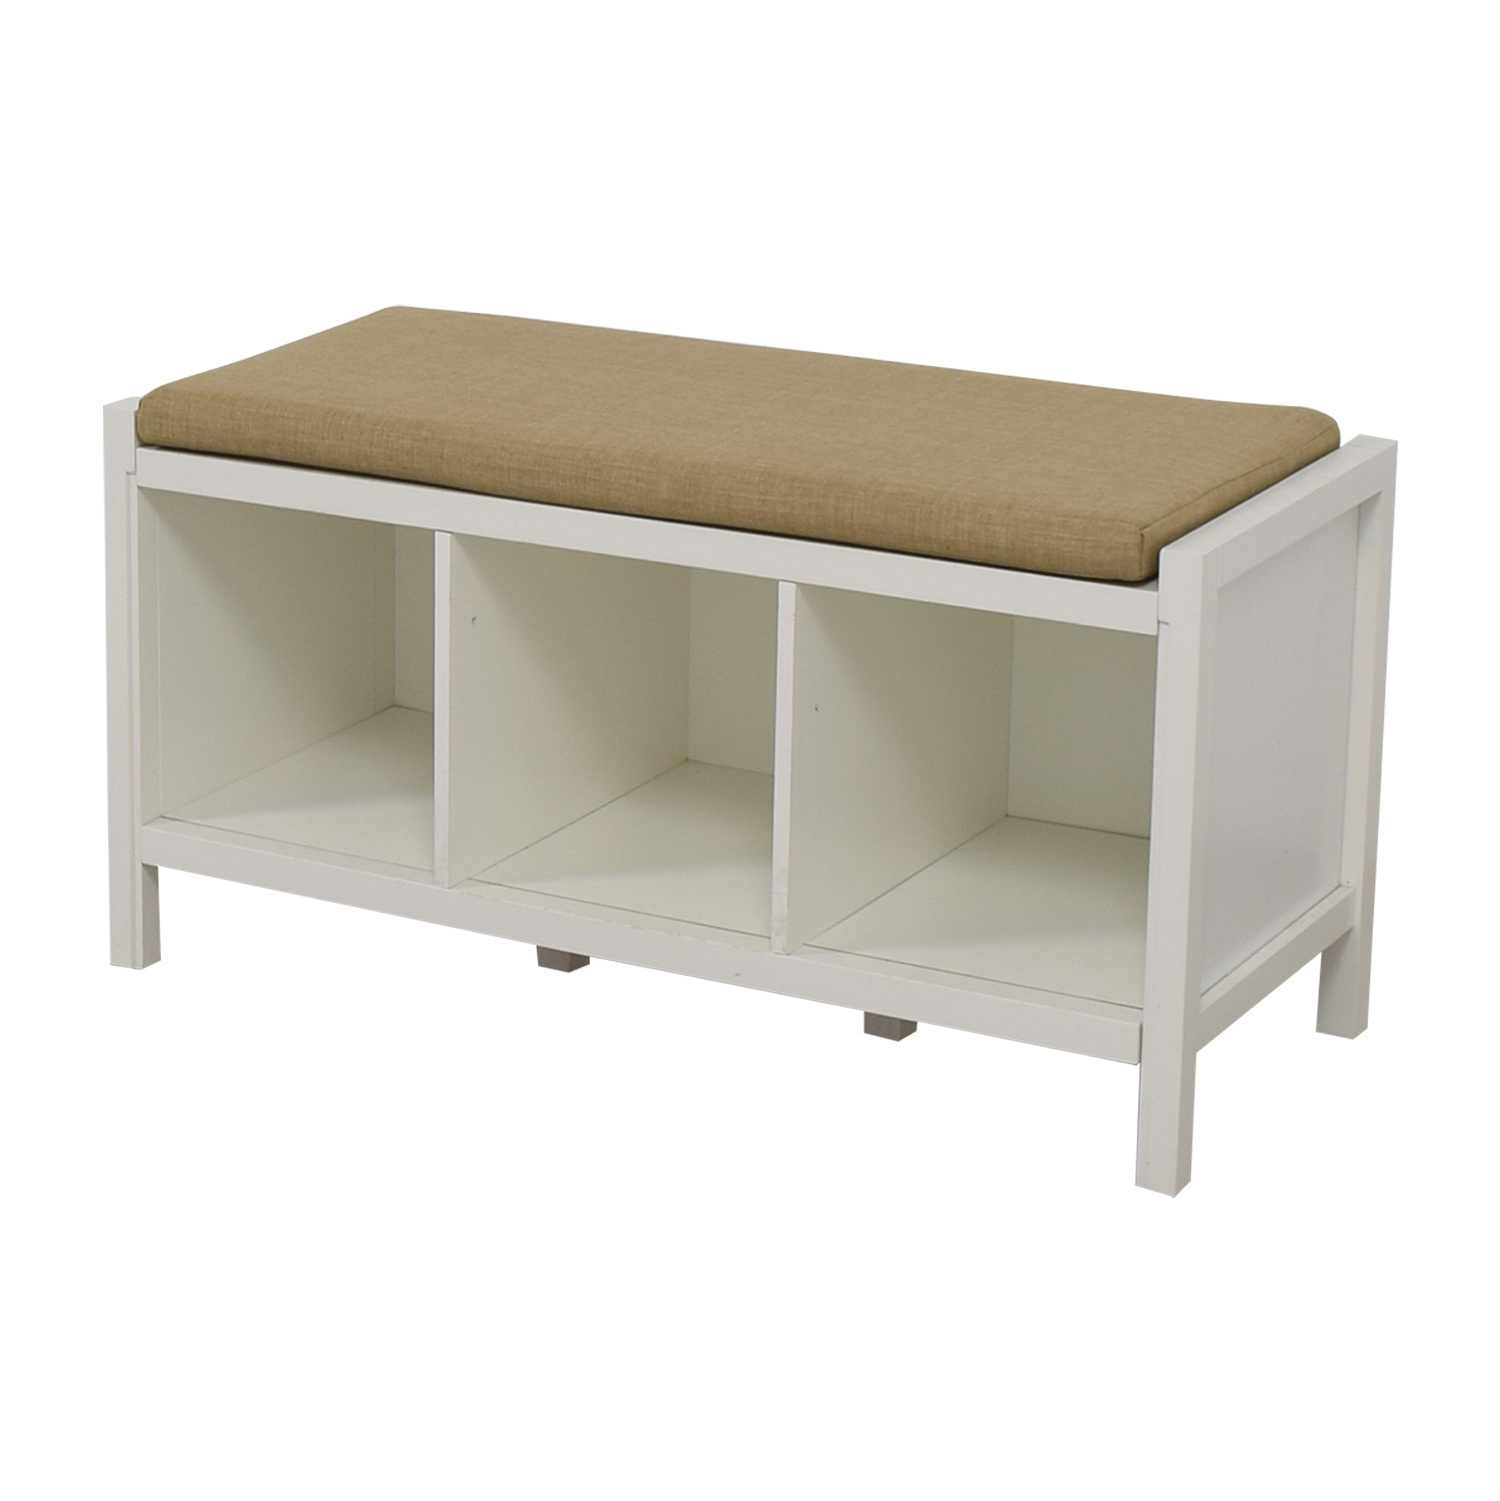 ... Shop Container Store Container Store Entry Way Storage Bench Online ...